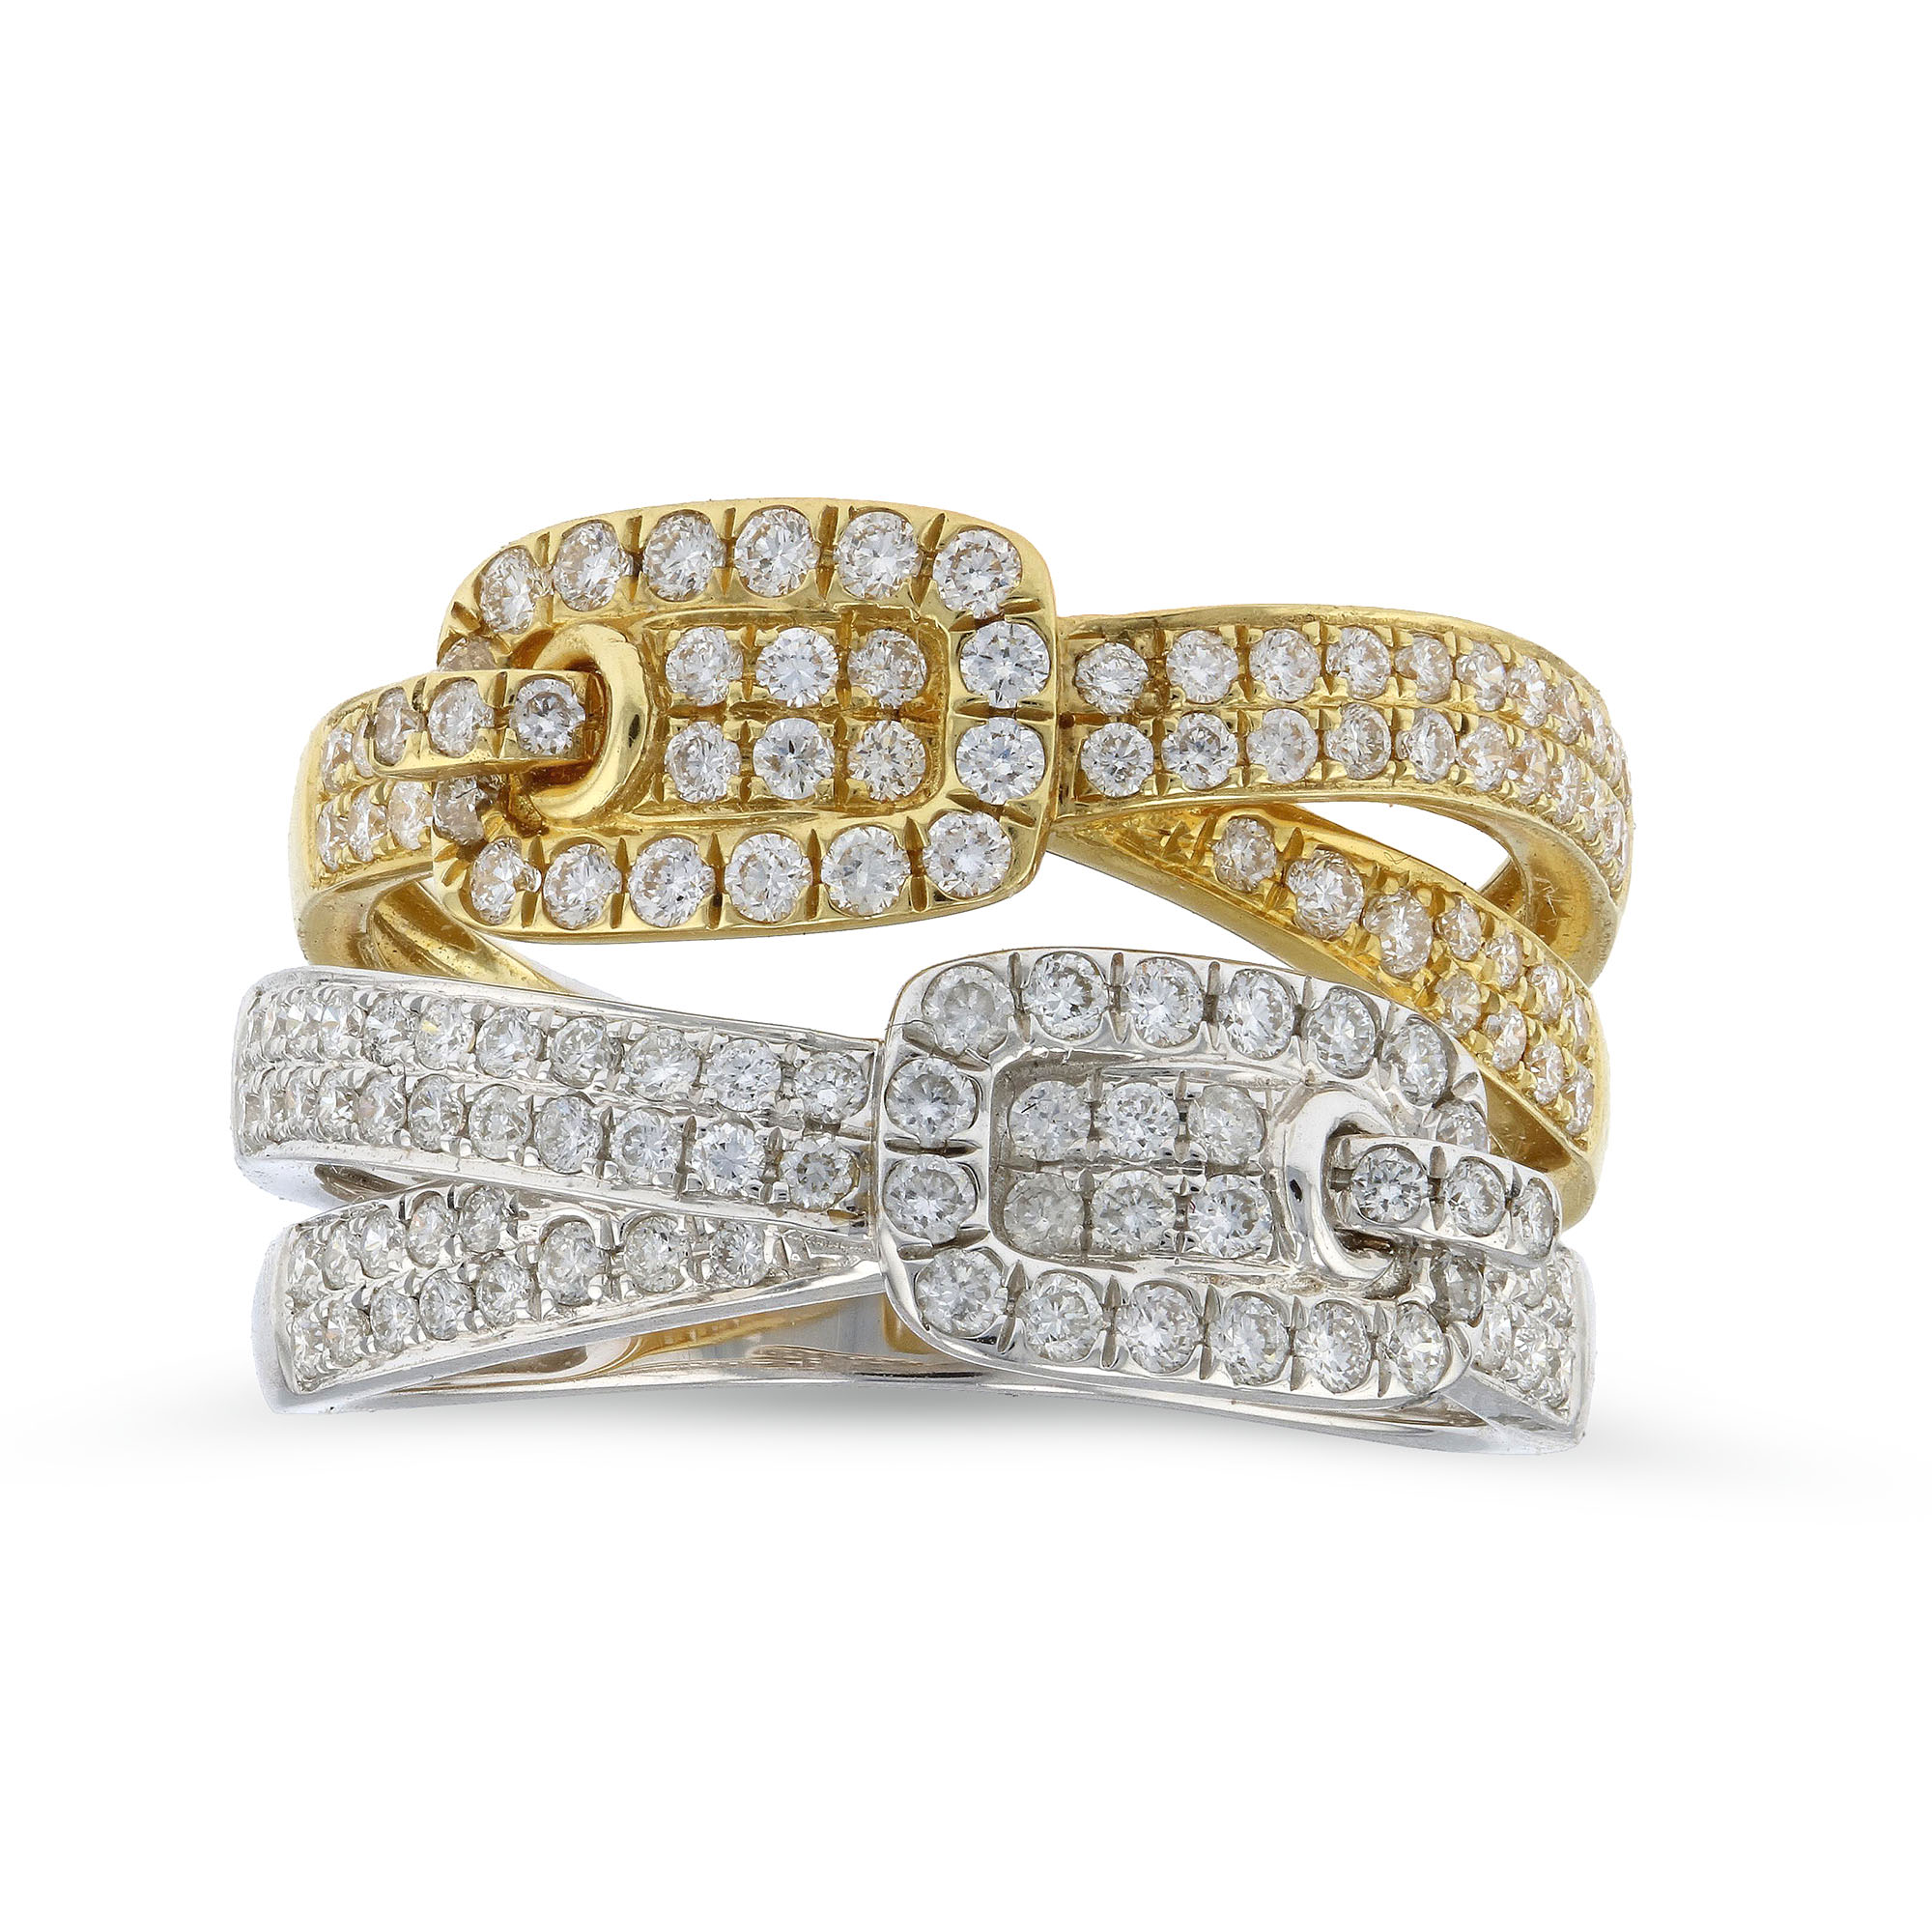 View 0.93ctw Diamond Fashion Ring in 18k Gold